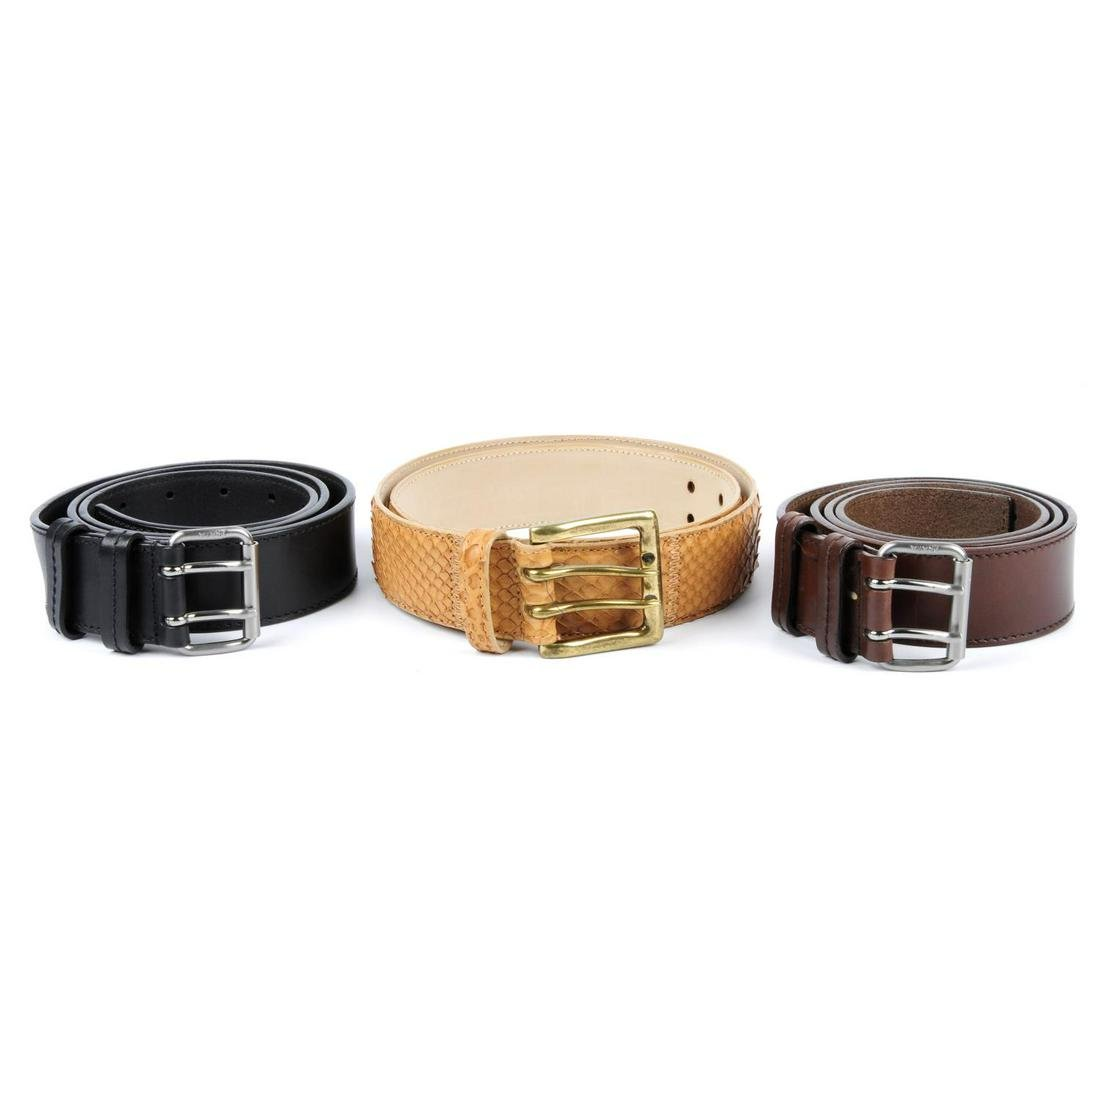 Three designer belts. To include a brown leather belt